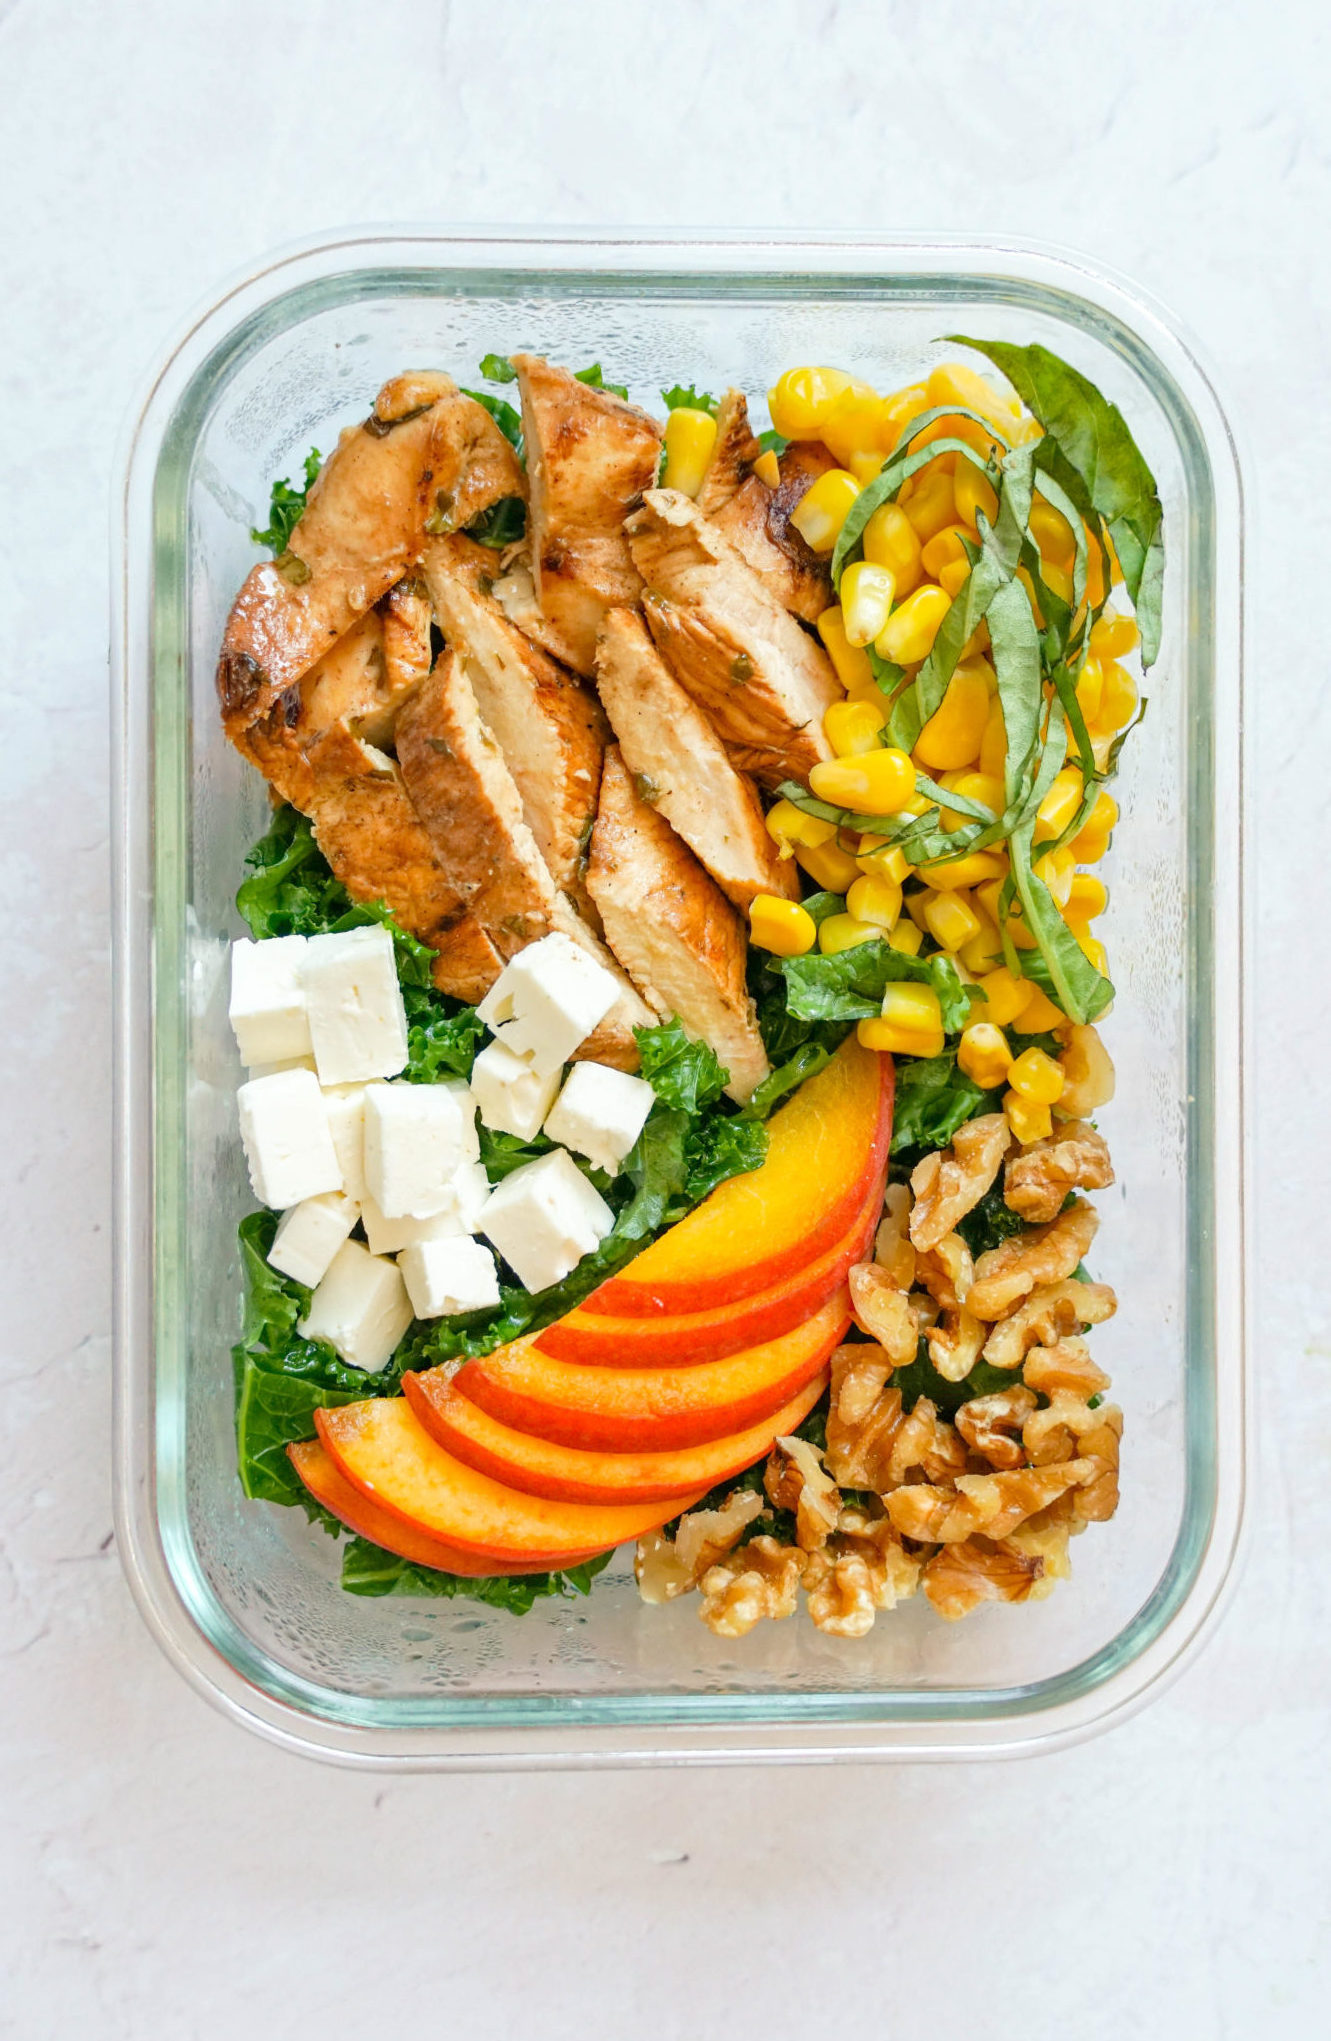 peach kale salad for meal prep, workweek lunch